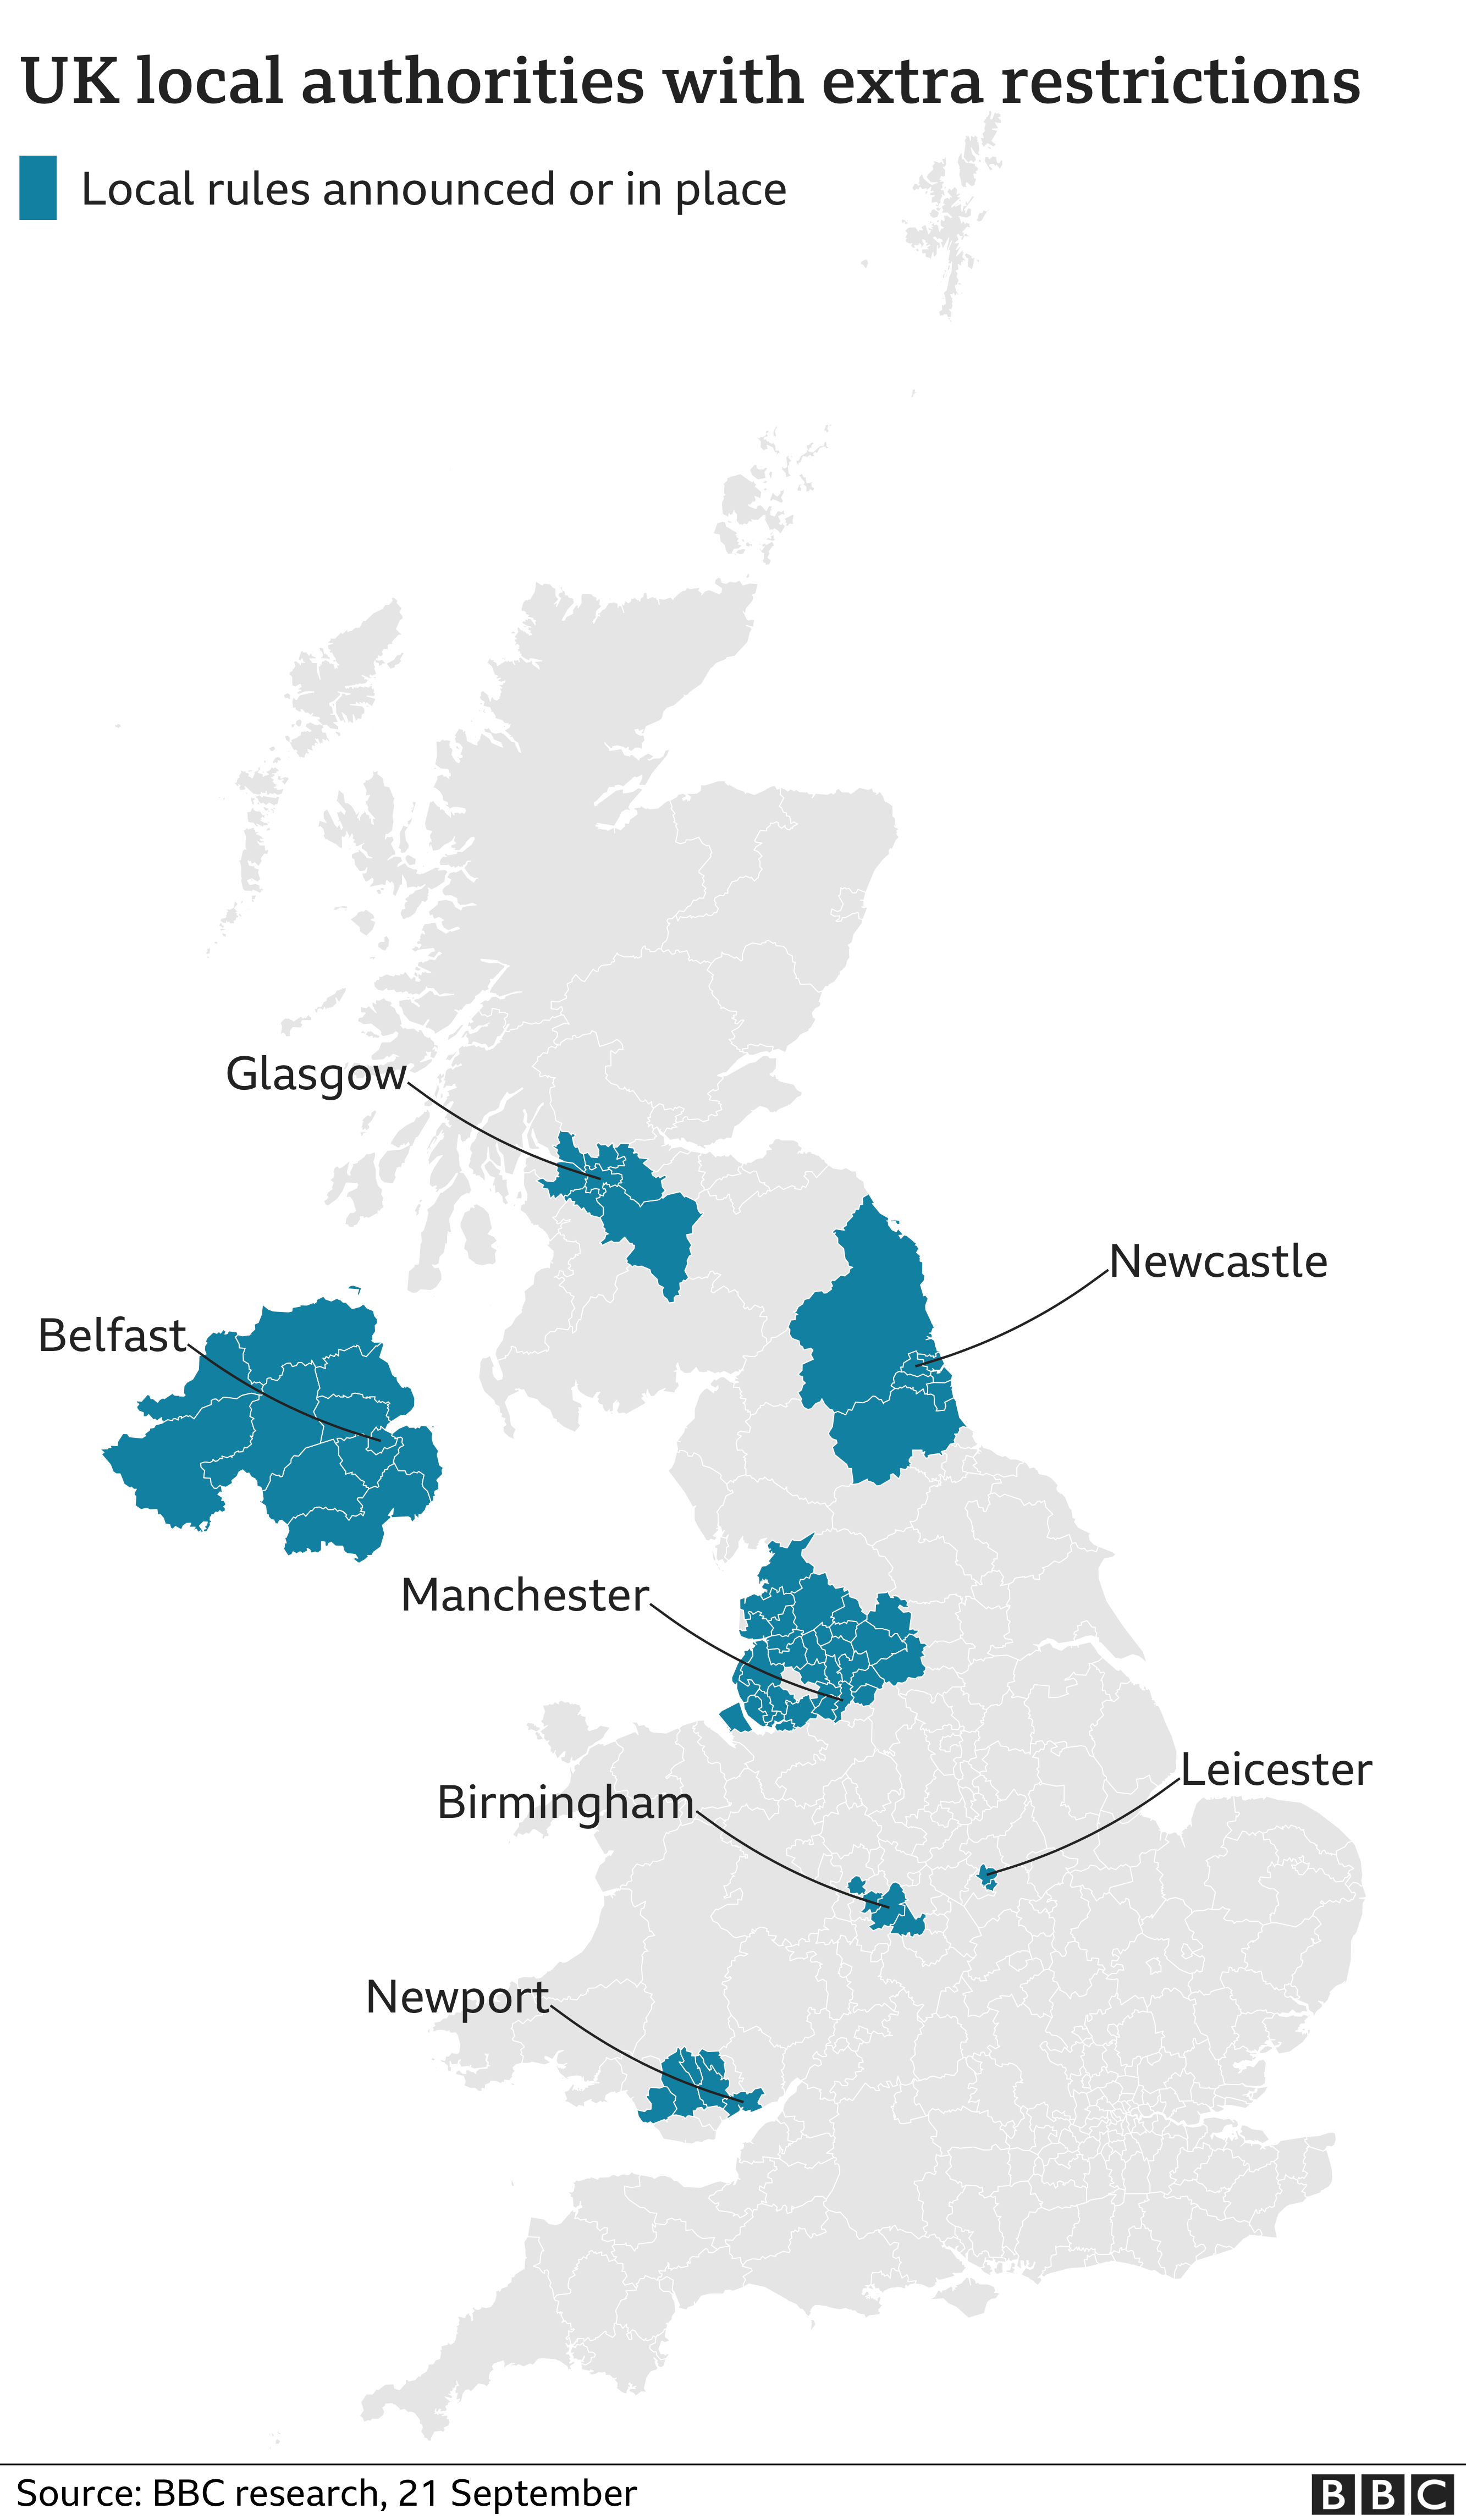 UK map shows restrictions extended to all of N Ireland, updated 21 Sep